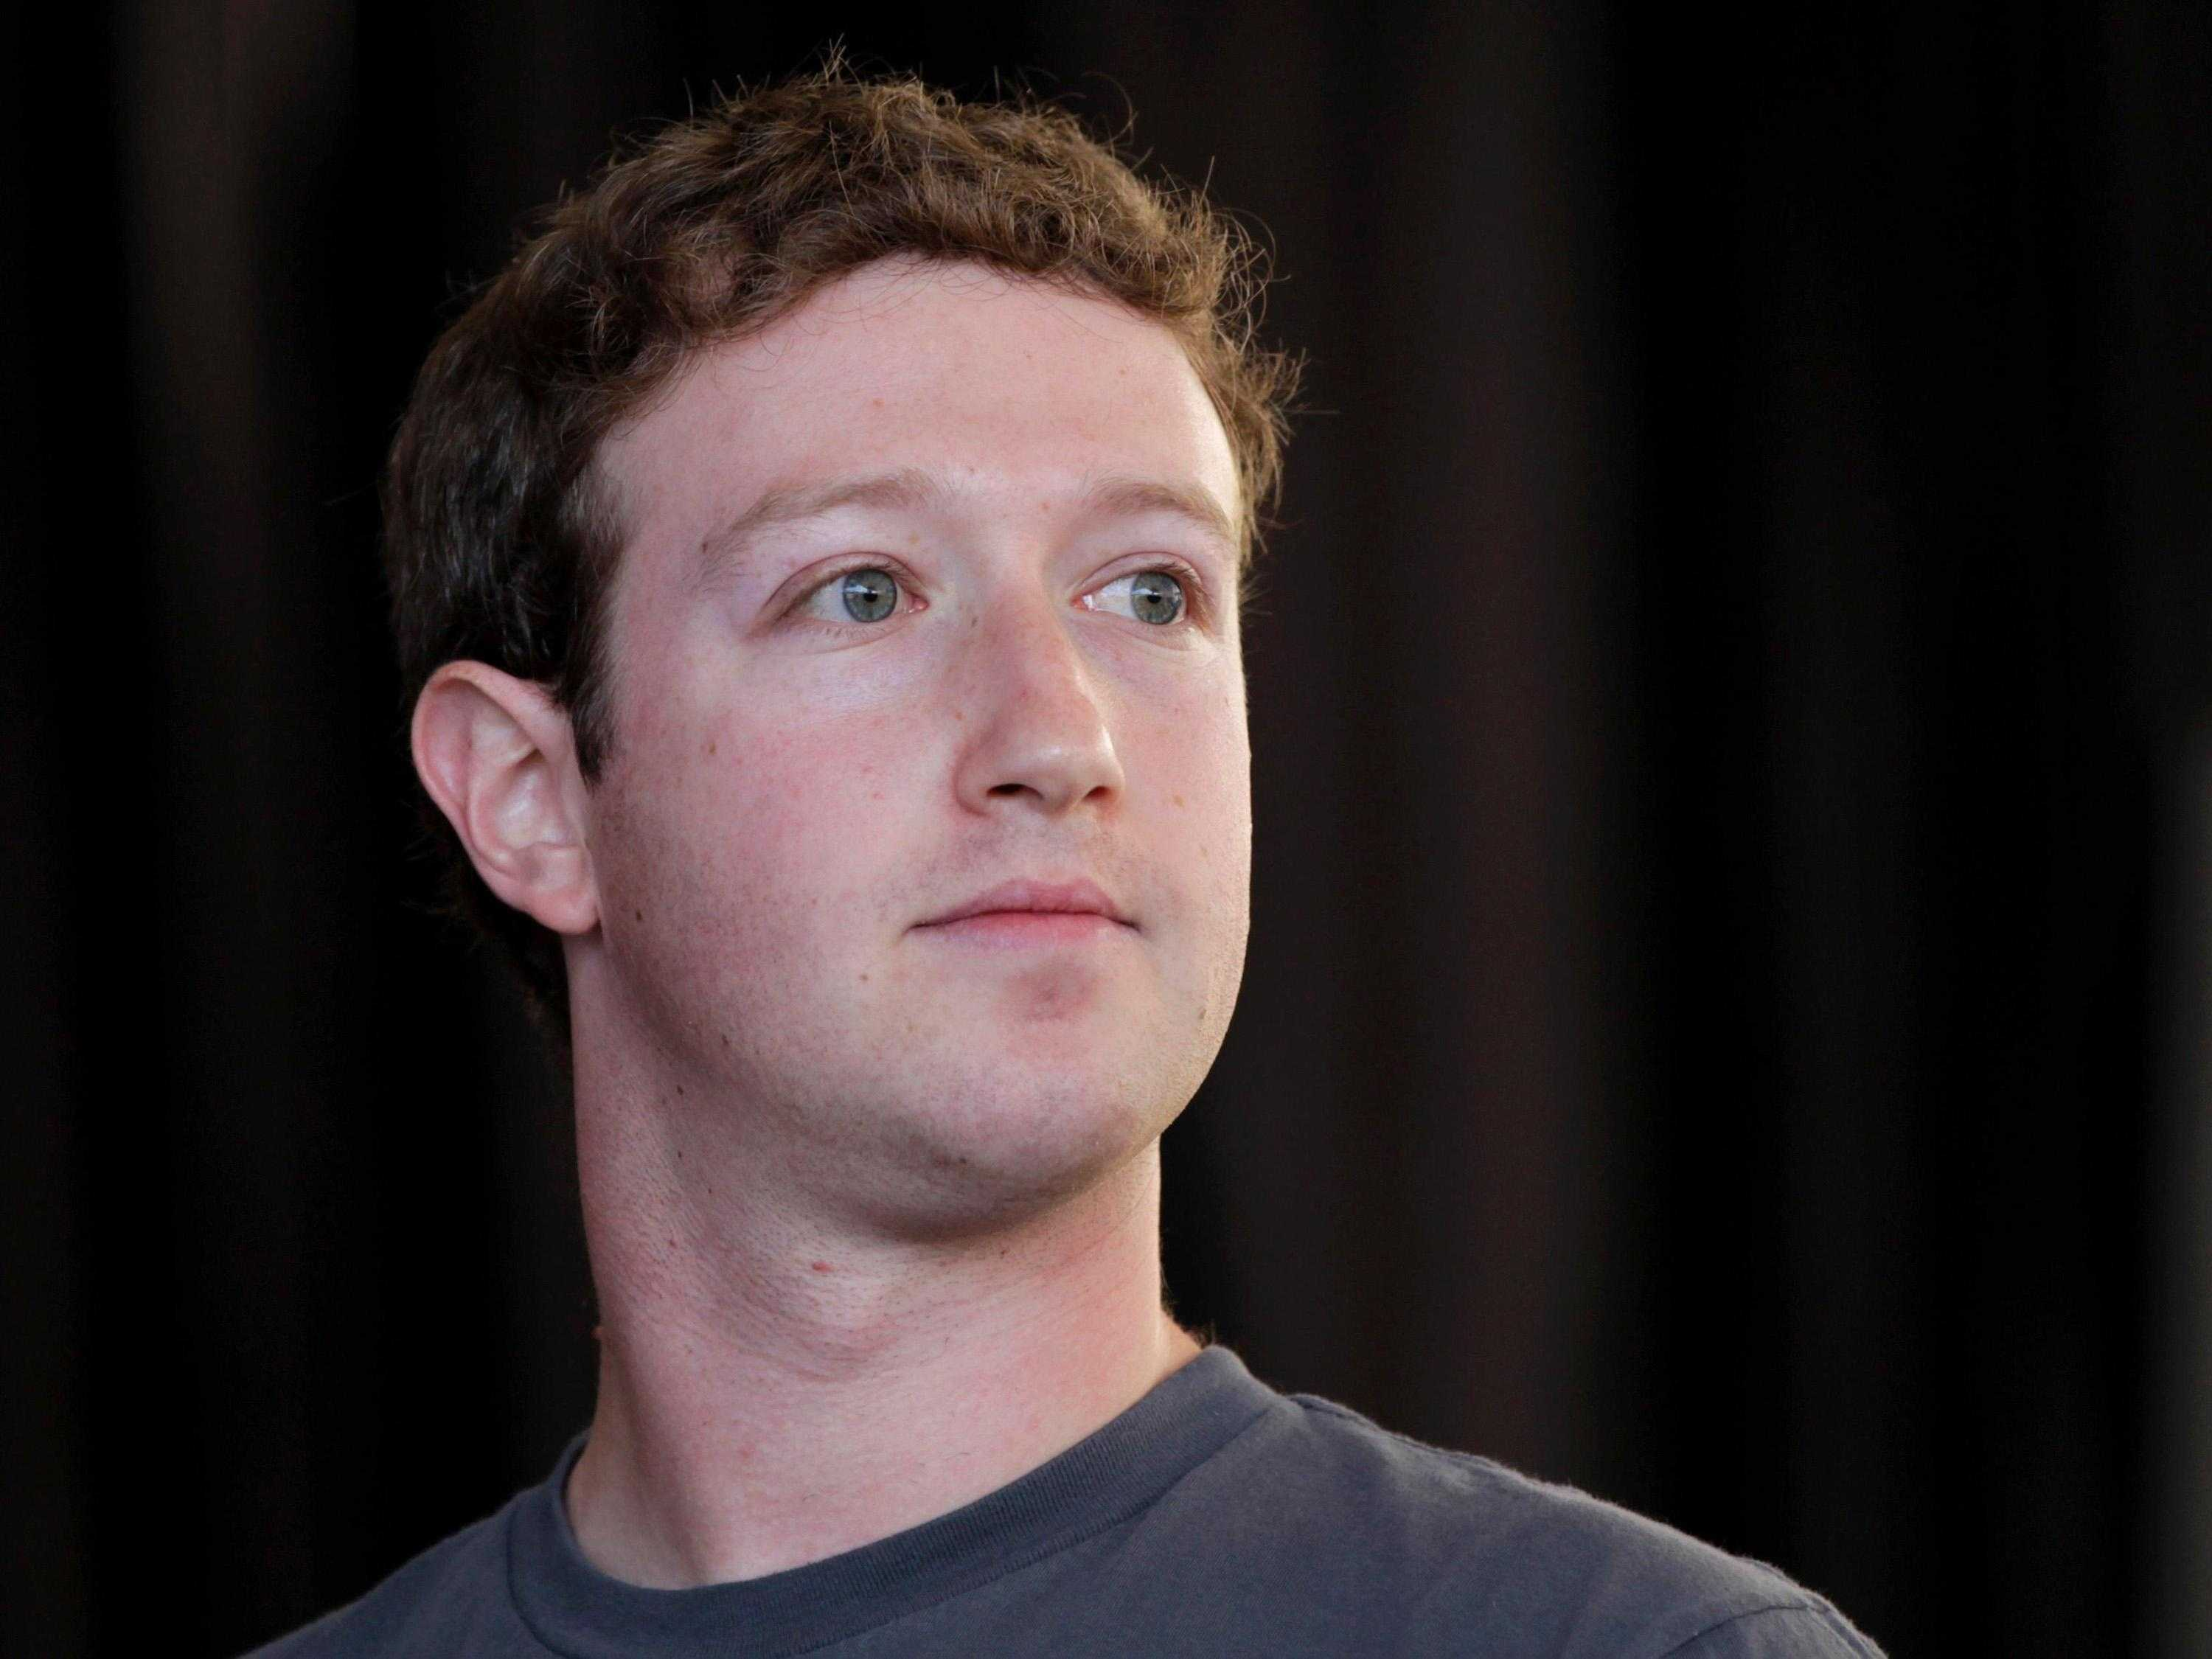 Facebook CEO Mark Zuckerberg admits mistakes, pledges fixes after data scandal